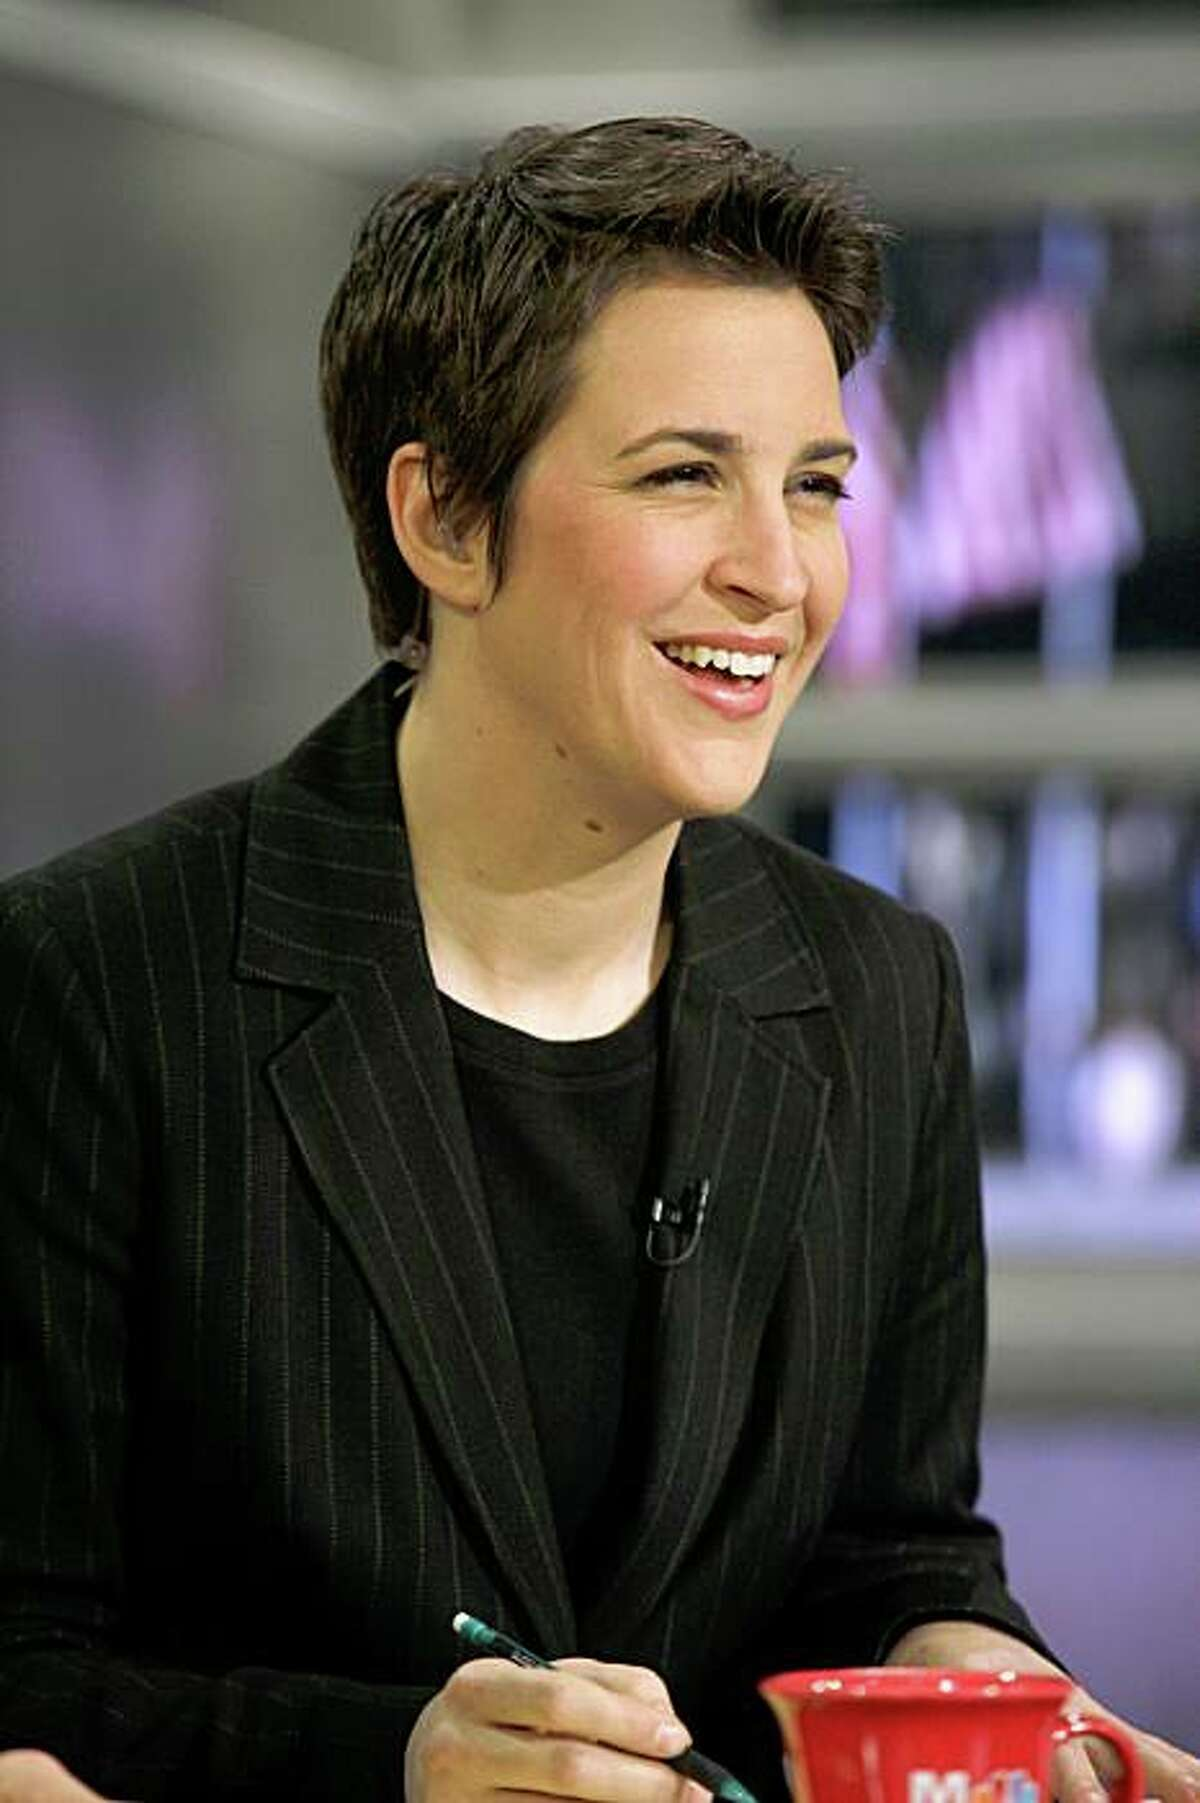 35-year-old Rachel Maddow is a new MSNBC commentator. Maddow, a lesbian and former San Francisco ACT-UP activist, will host